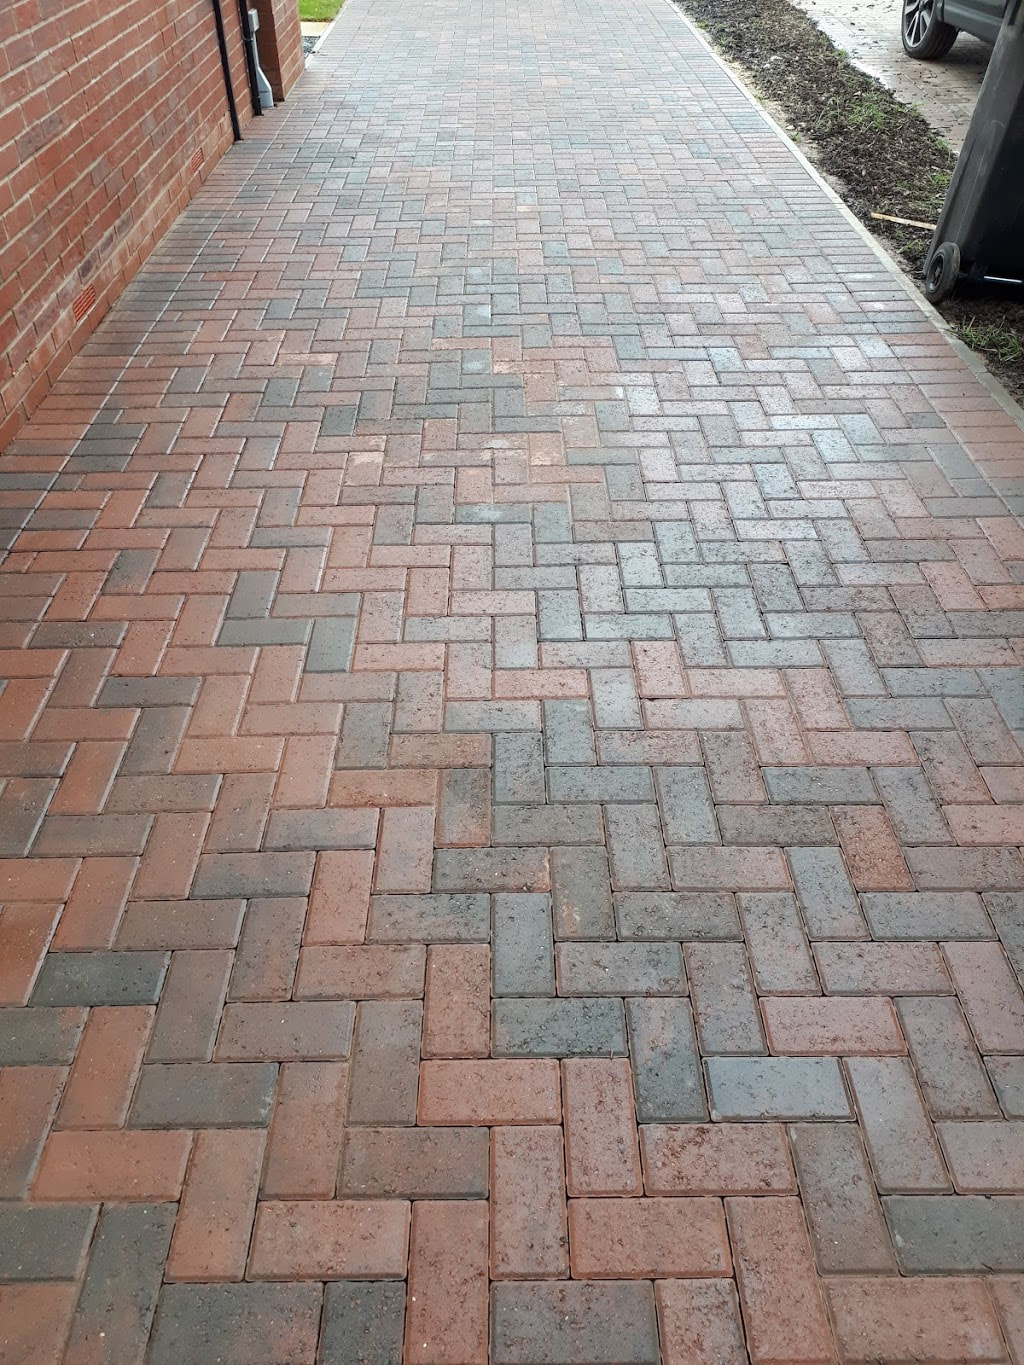 Block paving after being professionally cleaned and sealed